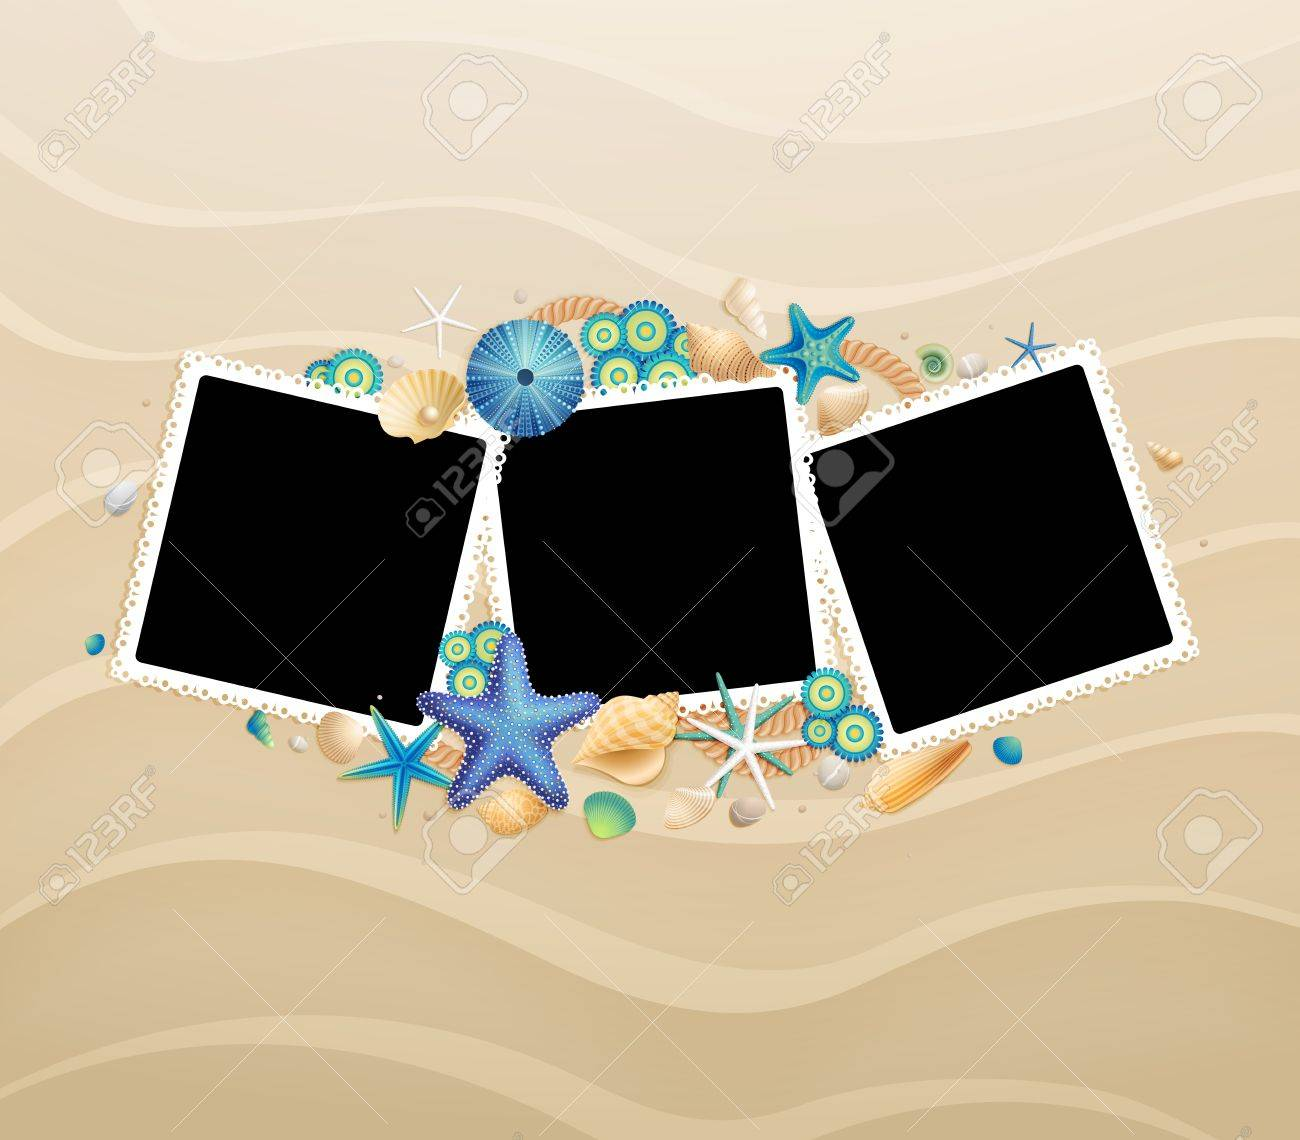 Pictures, shells and starfishes on sand background  Vector illustration Stock Vector - 14748582